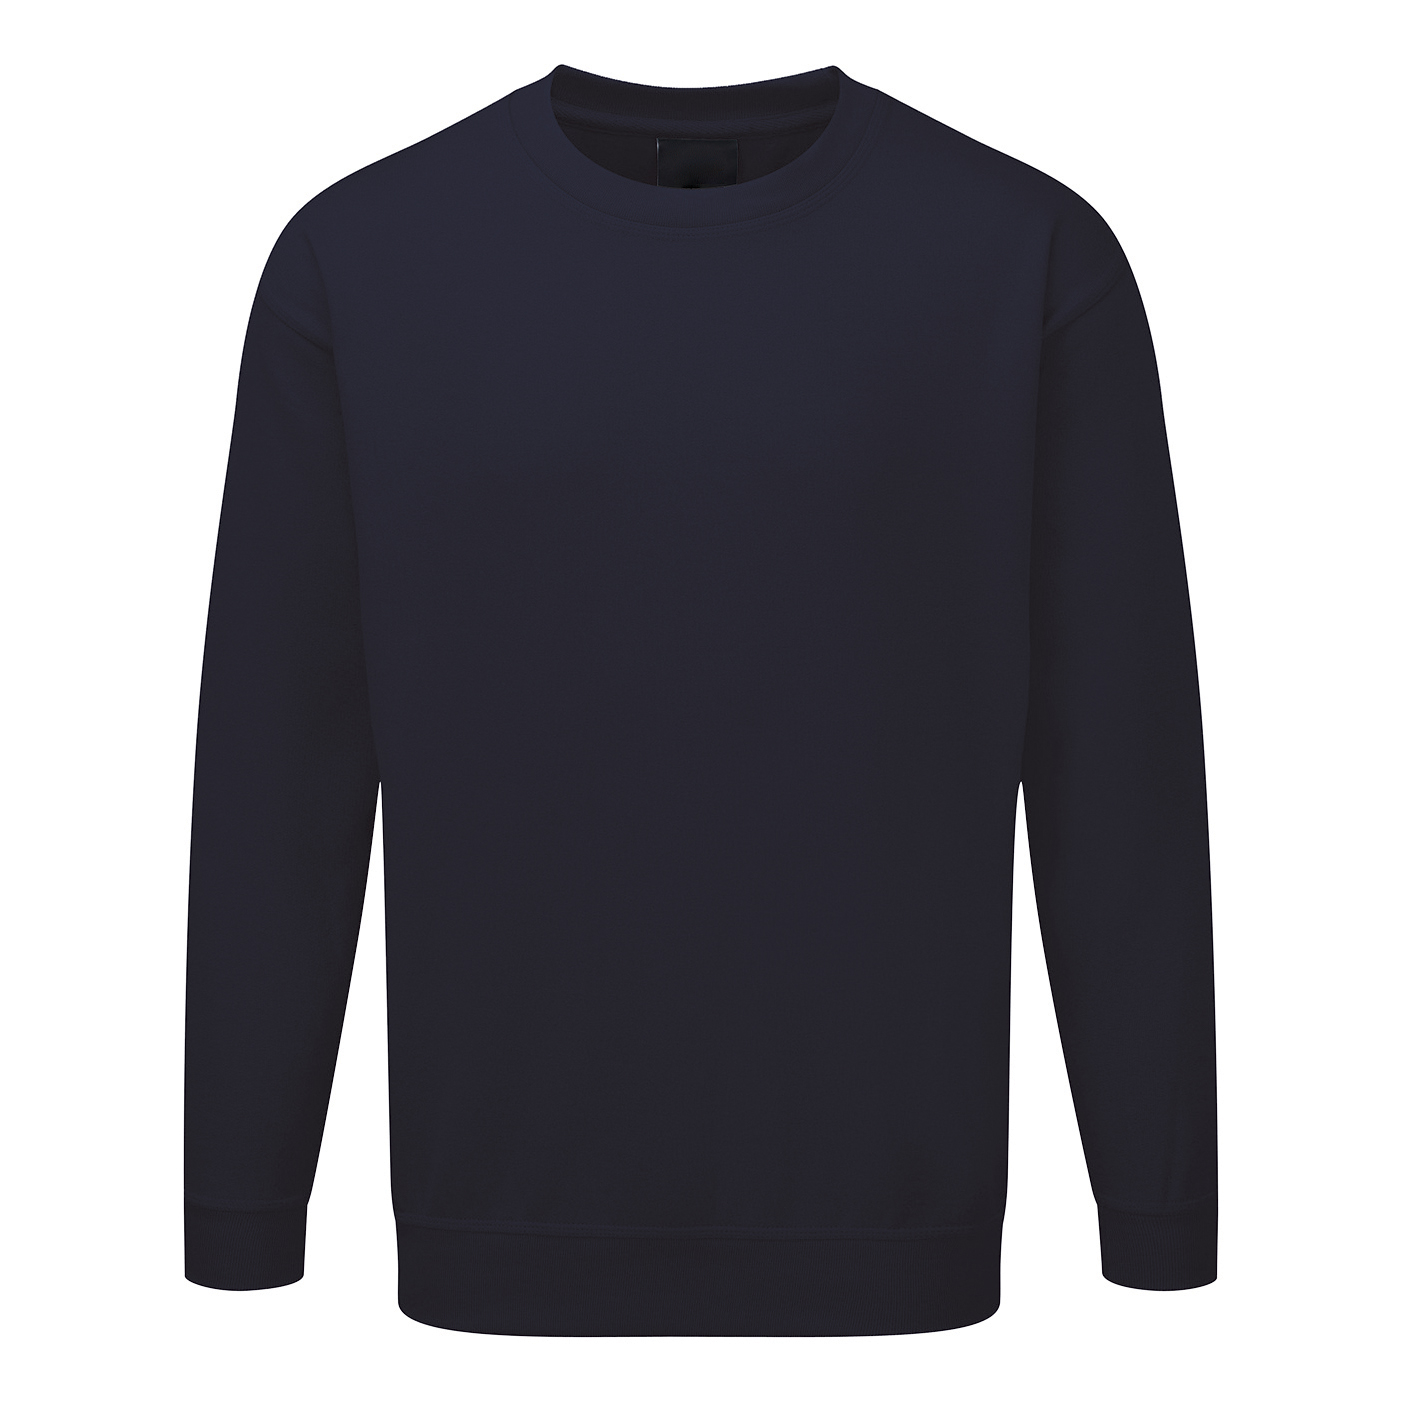 Sweatshirt Polyester/Cotton Fabric with Crew Neck XXXXLarge Navy 1-3 Days Lead Time